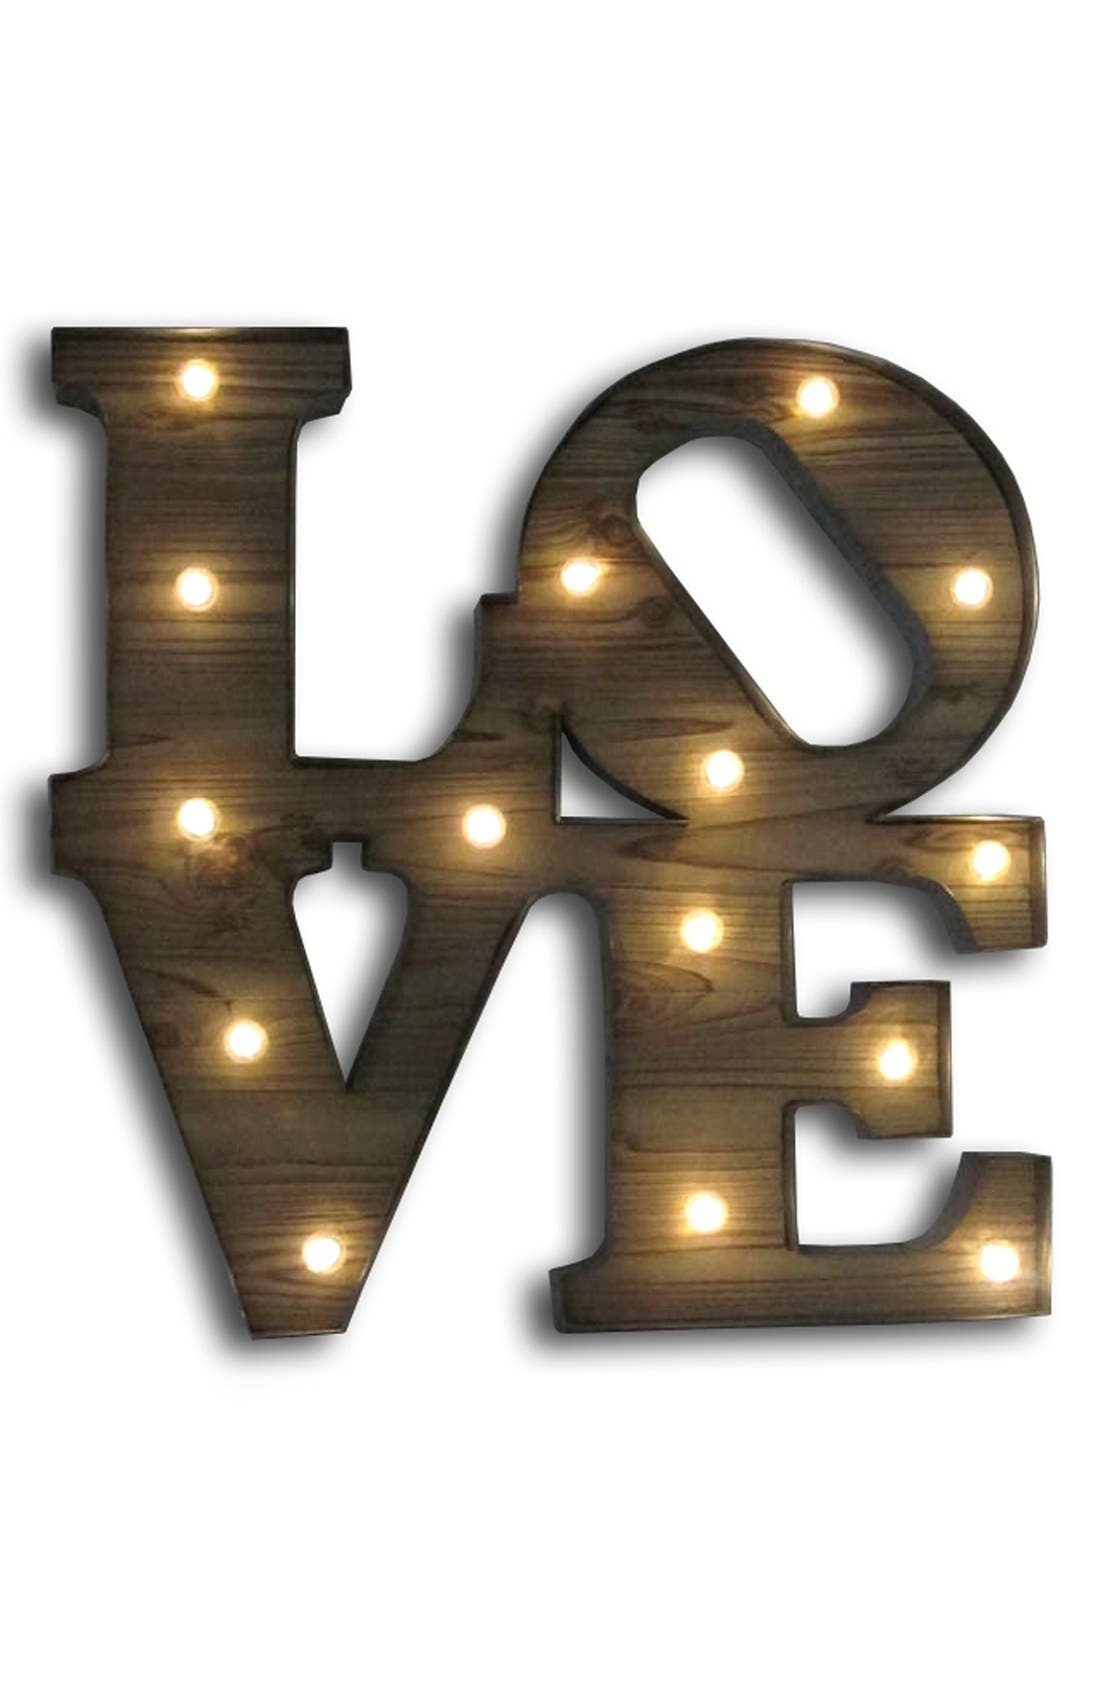 Alternate Image 1 Selected - Crystal Art Gallery 'Love' Marquee Light Wooden Sign